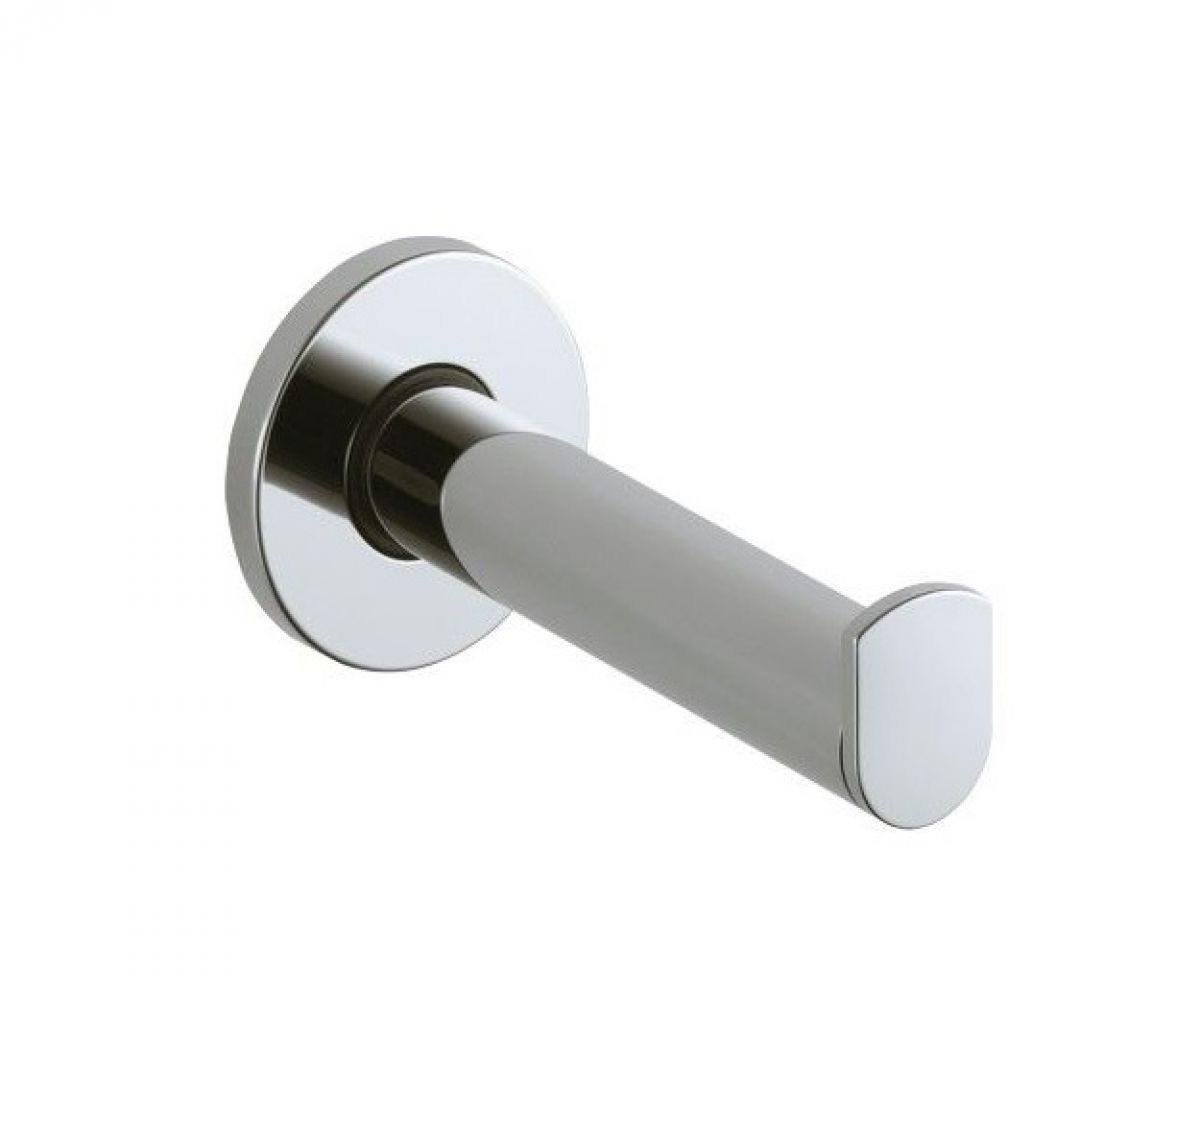 Keuco Plan Spare Toilet Paper Holder Uk Bathrooms